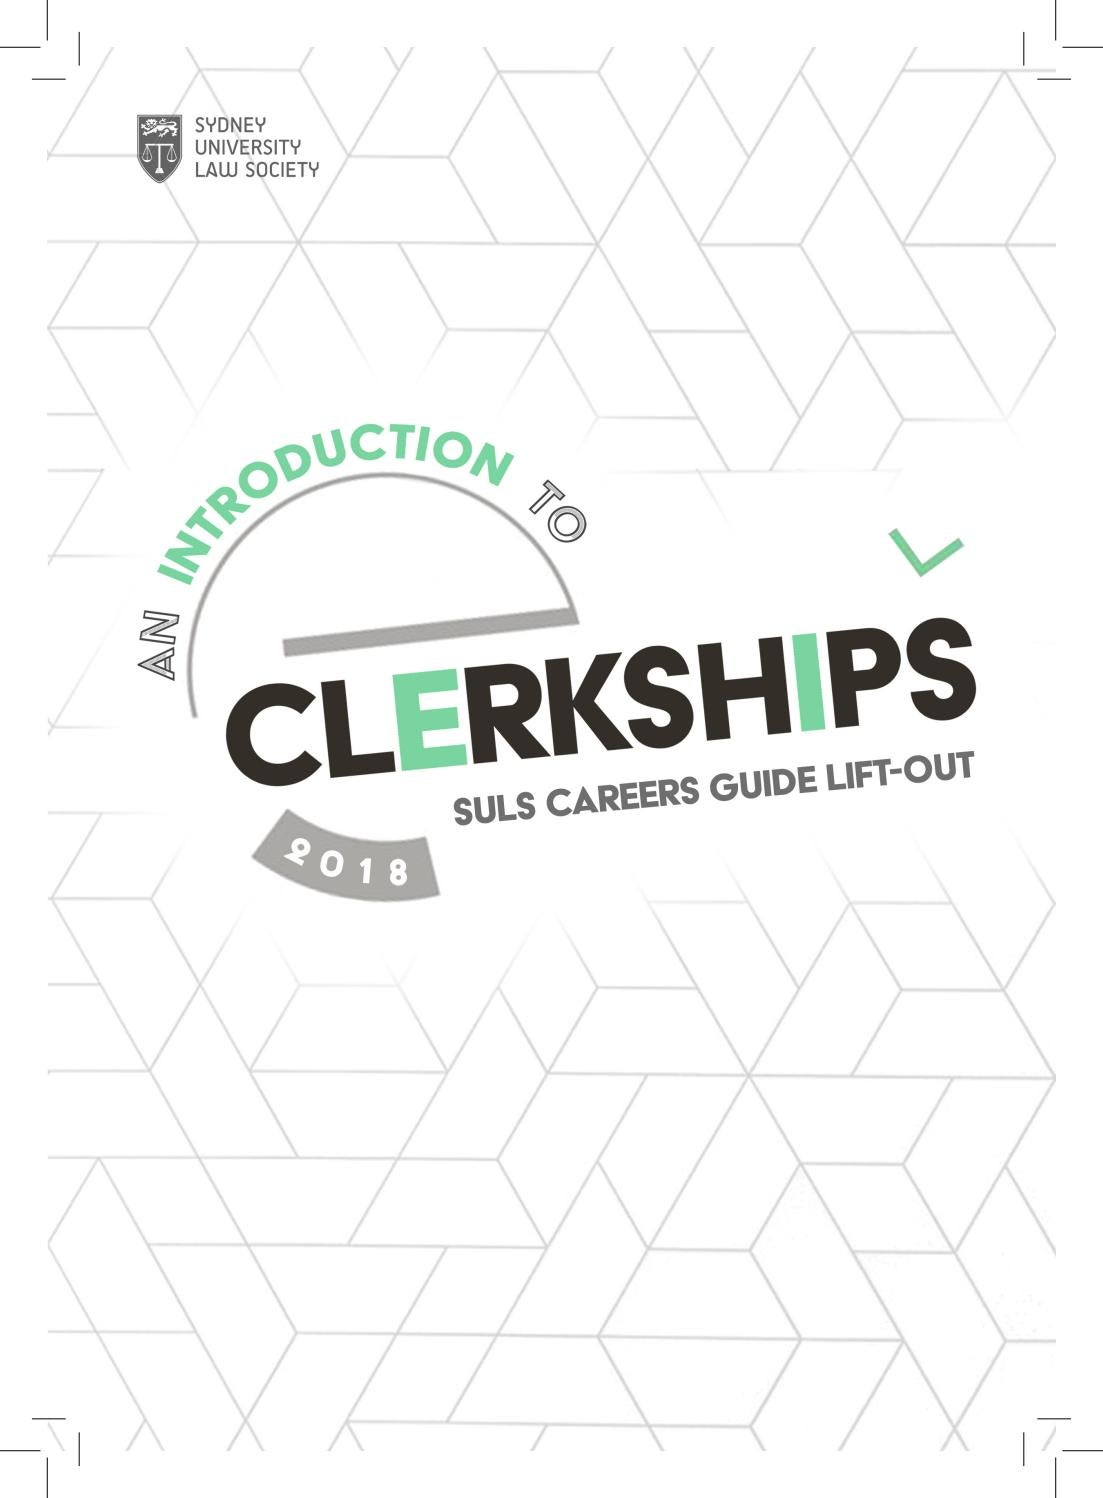 An Introduction to Clerkships 2018 by Sydney University